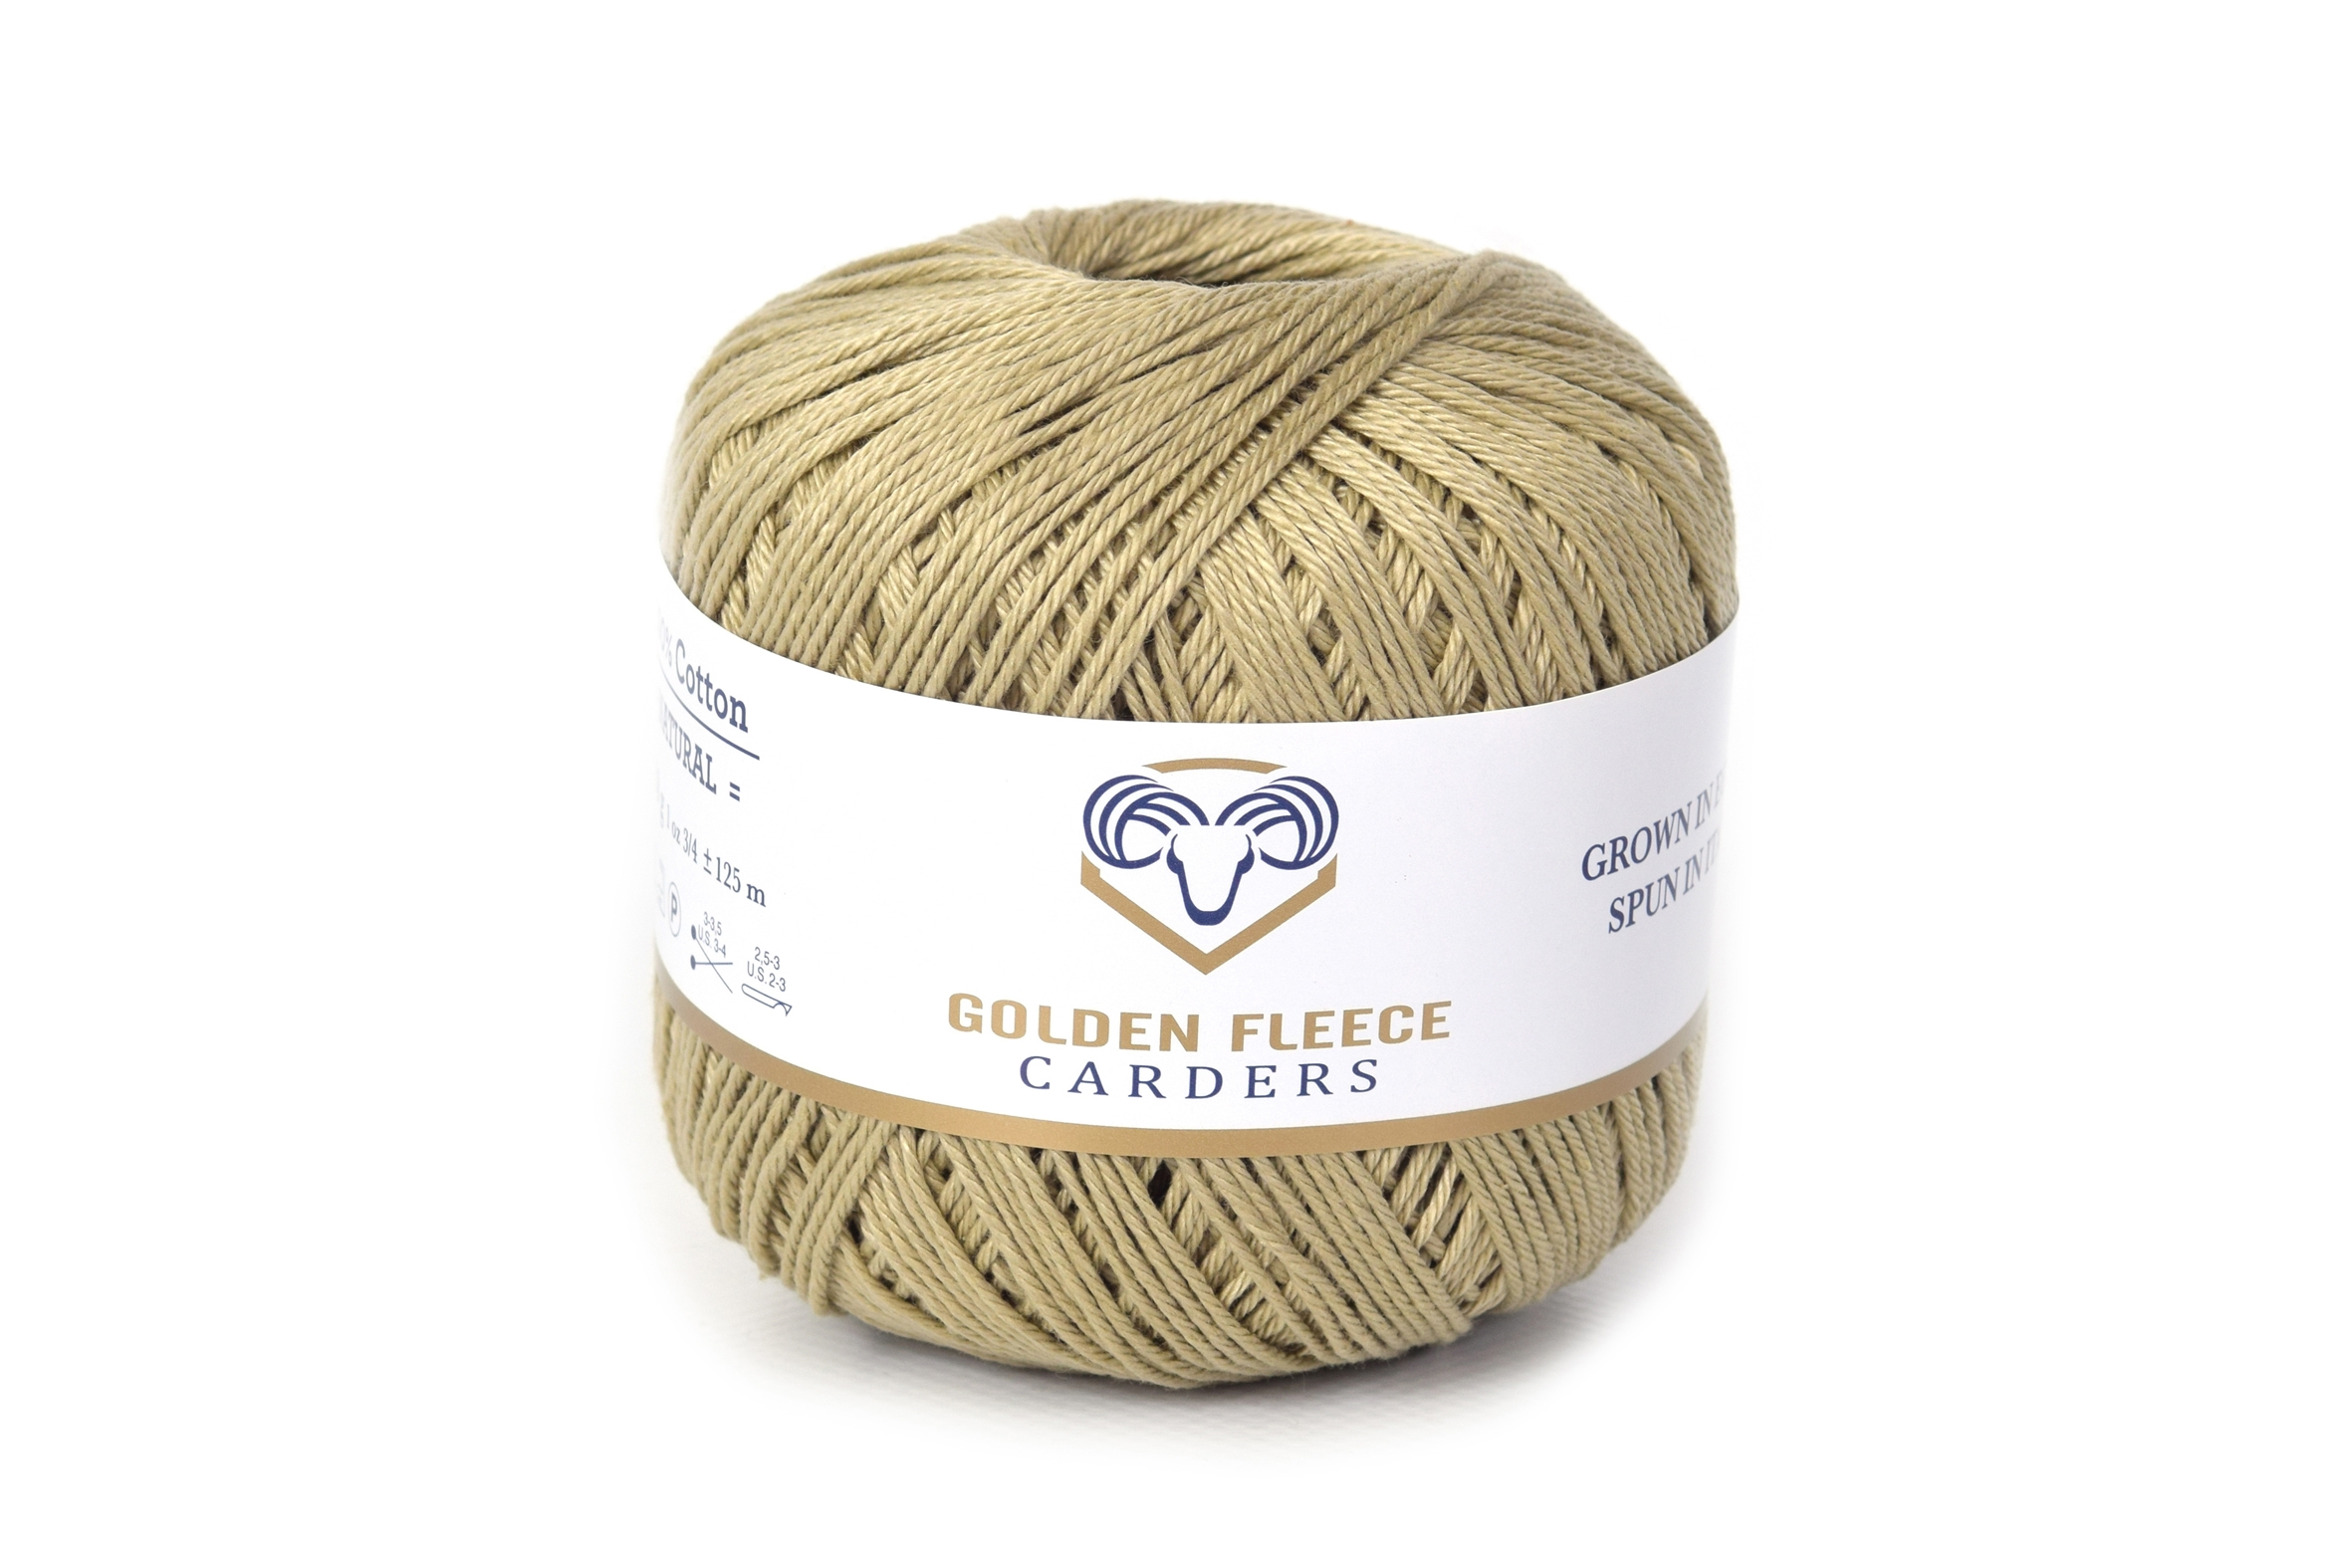 Olive Green - 100% Cotton Yarn - 50 grams